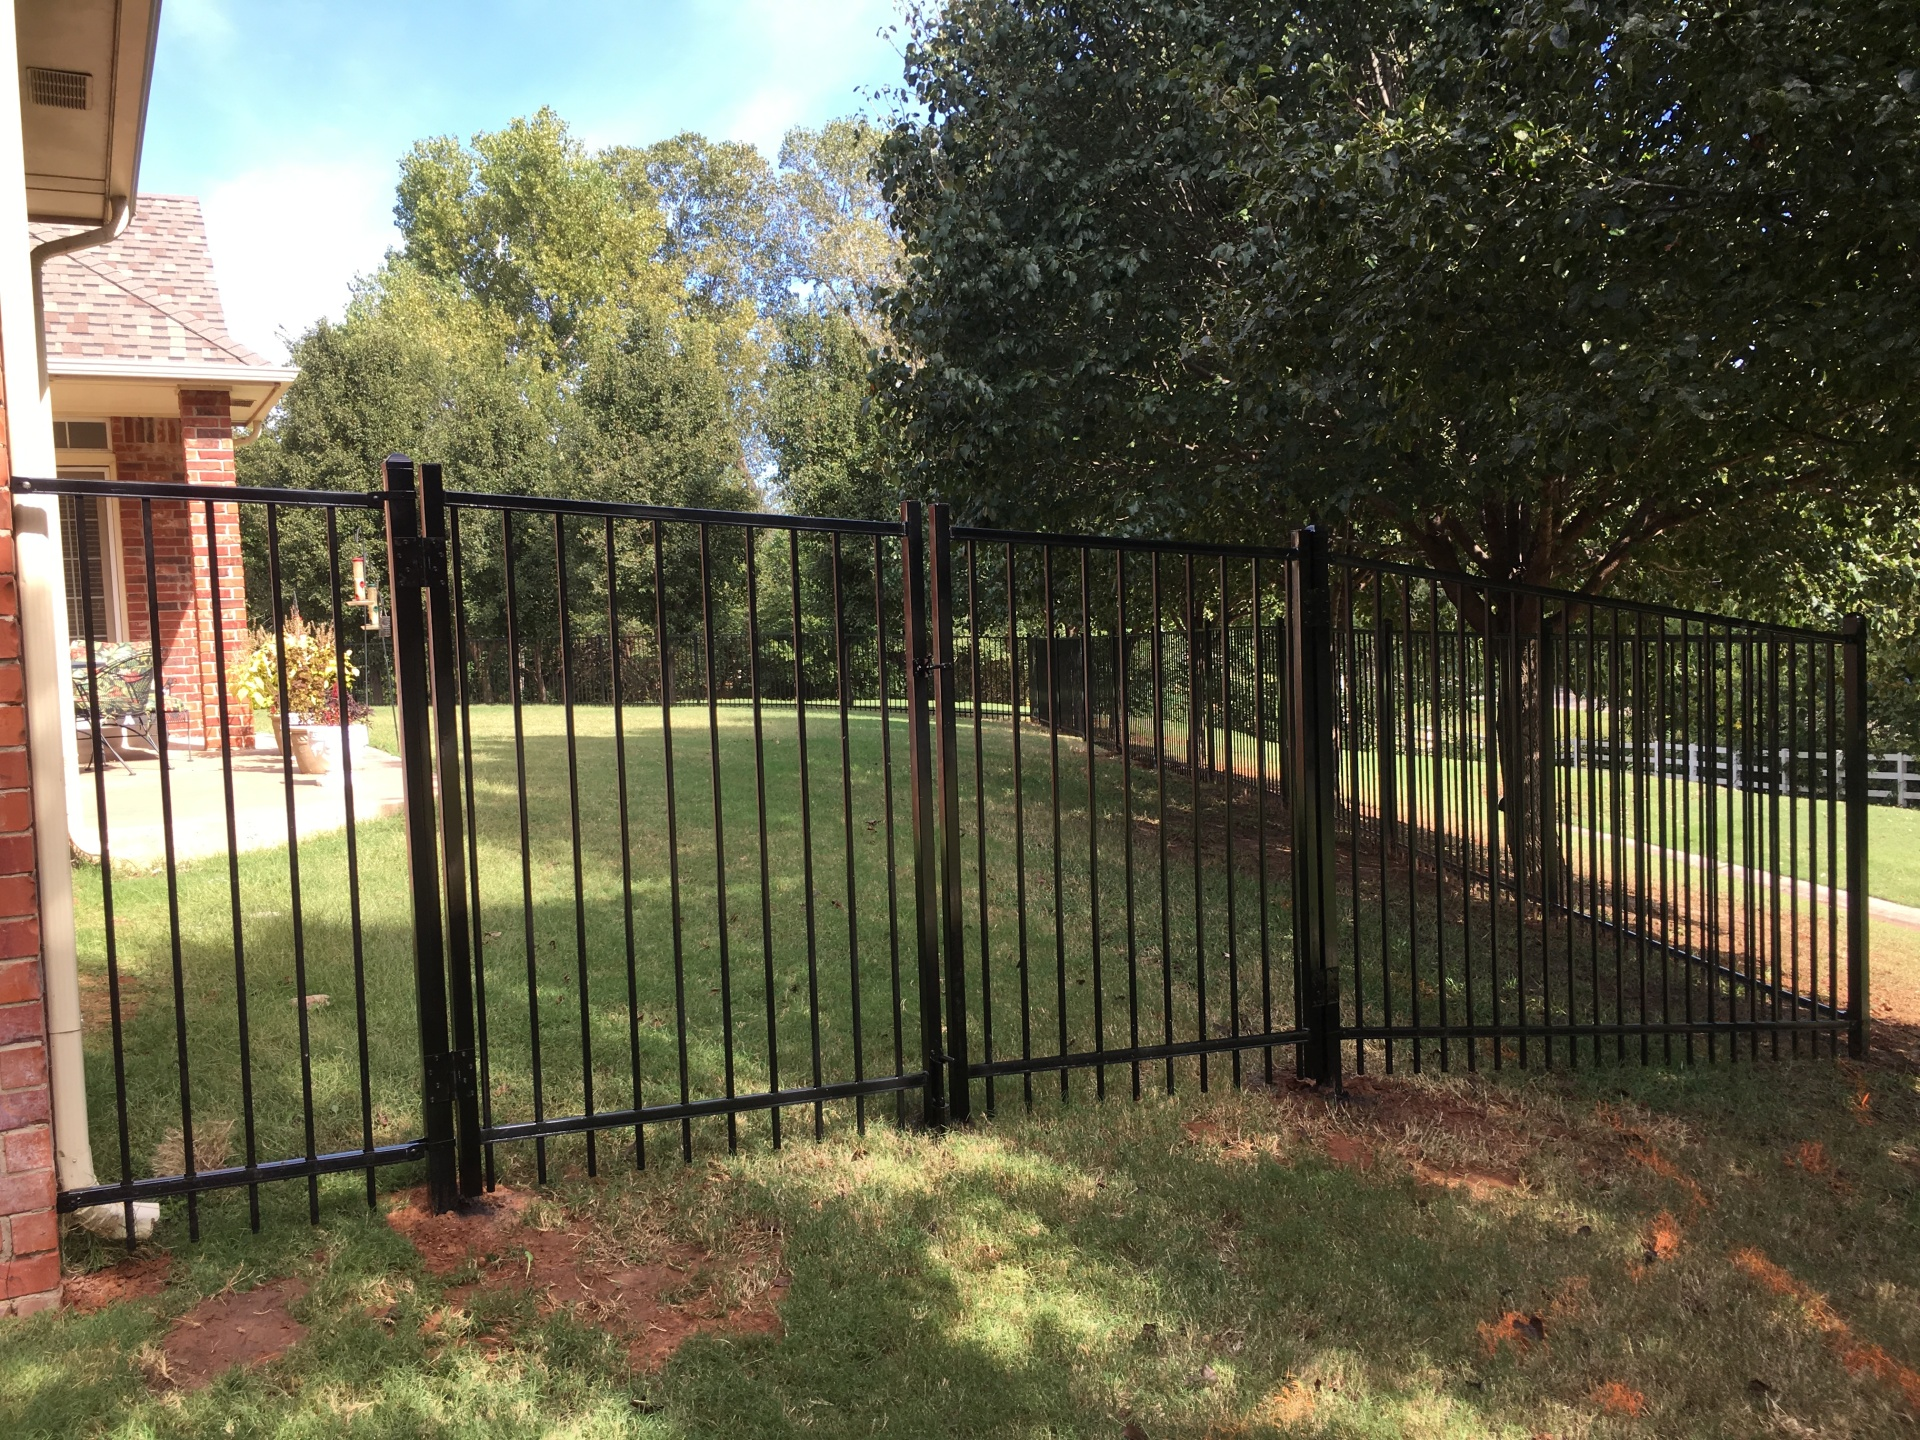 Double Iron Gates, Backyard fence, dog fence, secure, security fence, fencing, Oklahoma fence company, Iron fence company, Edmond Fence Company